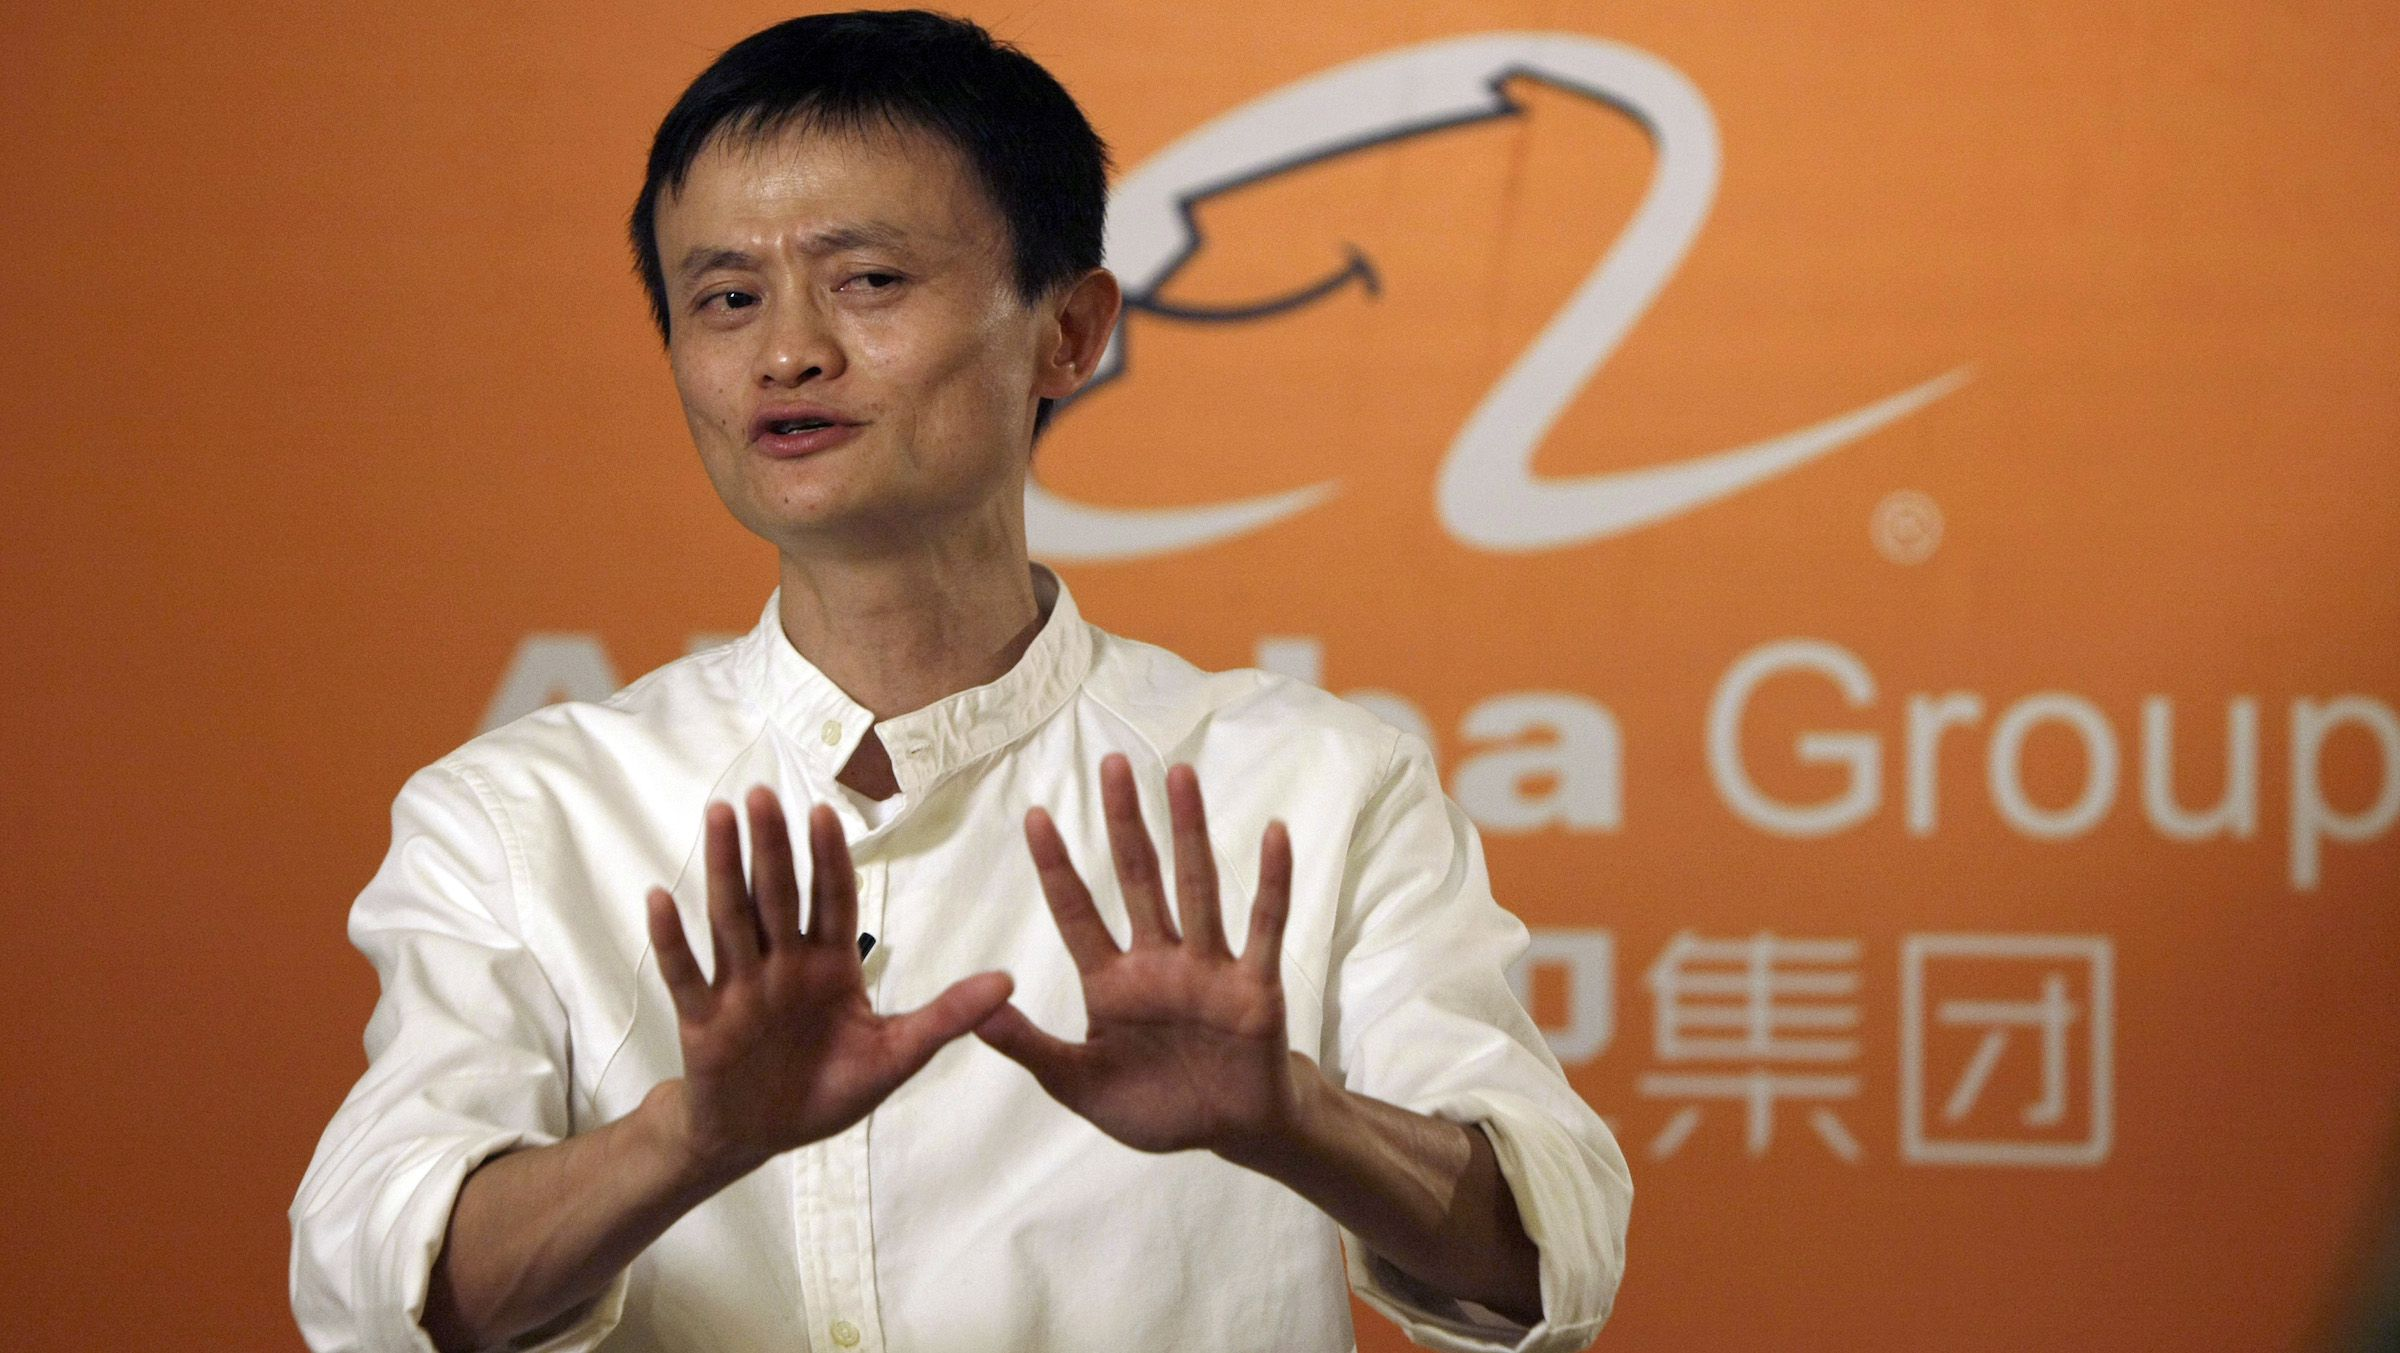 Jack Ma, chief executive of Alibaba Group, speaks during a news conference